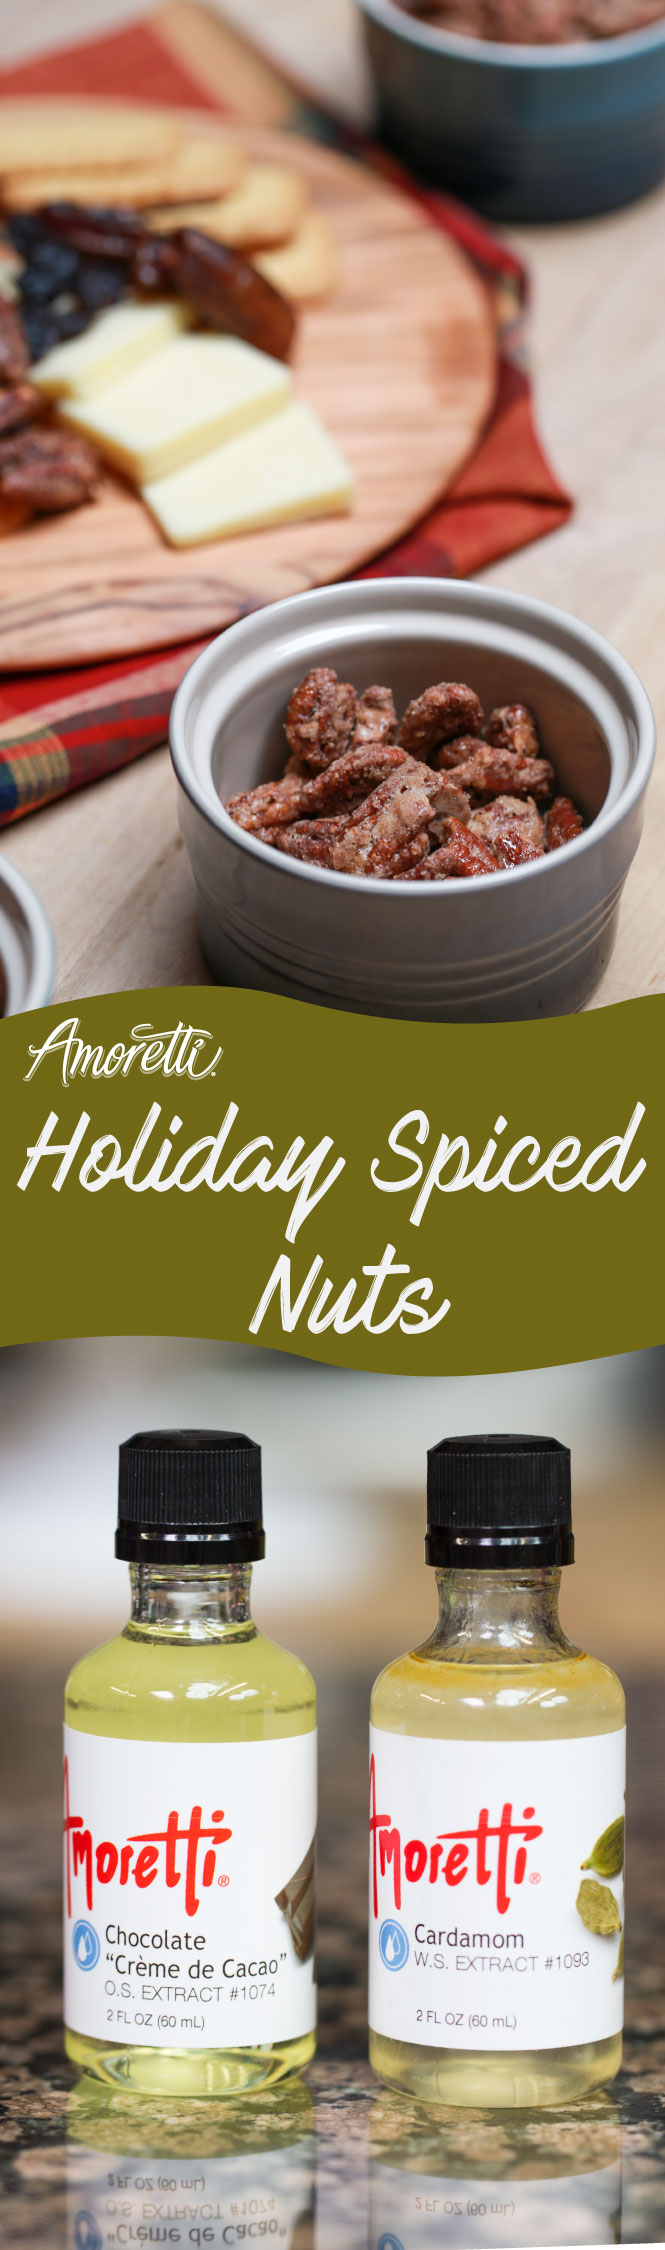 When you need a snack during the holidays, try this deliciously nutty recipe!